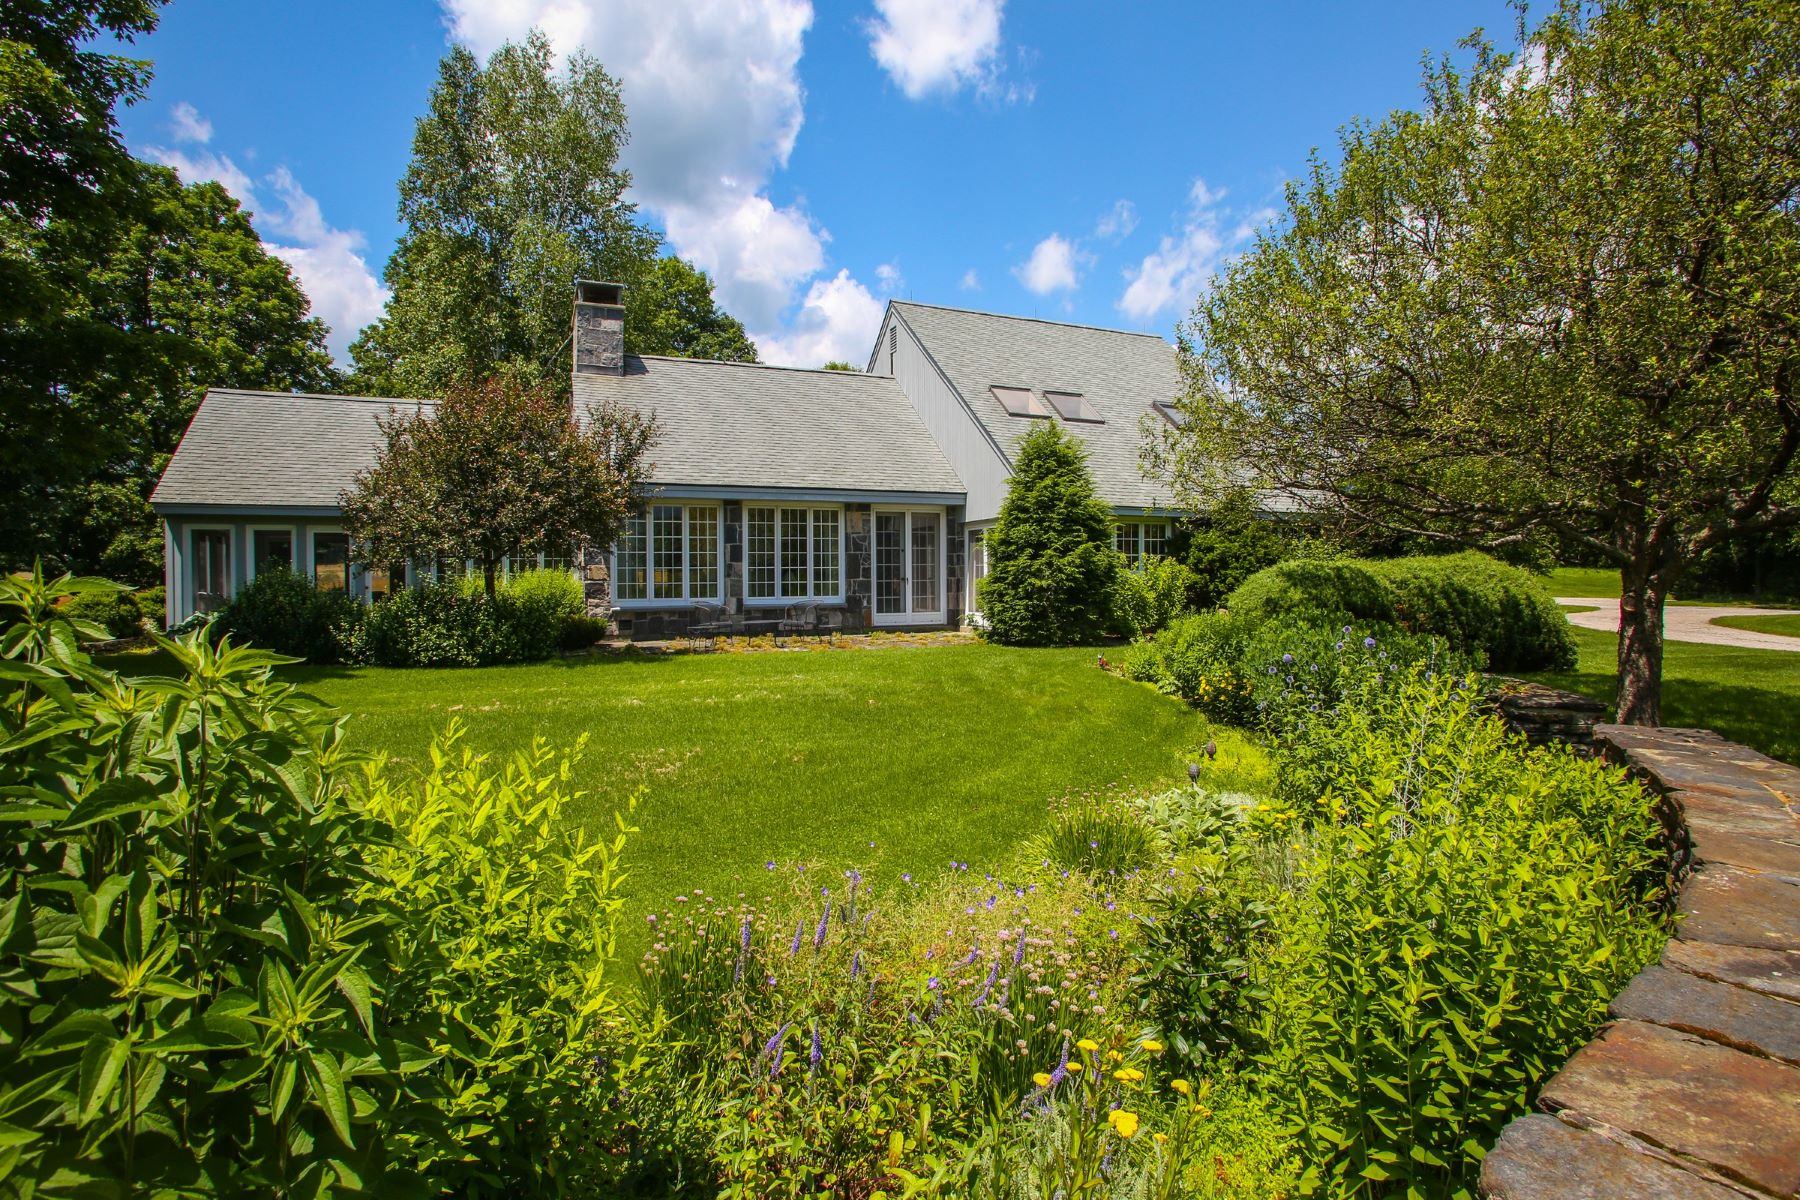 واحد منزل الأسرة للـ Sale في A Magical Property: A Beautiful Home with Mountain Views and In-ground Pool 295 Hancock Rd Williamstown, Massachusetts 01267 United States